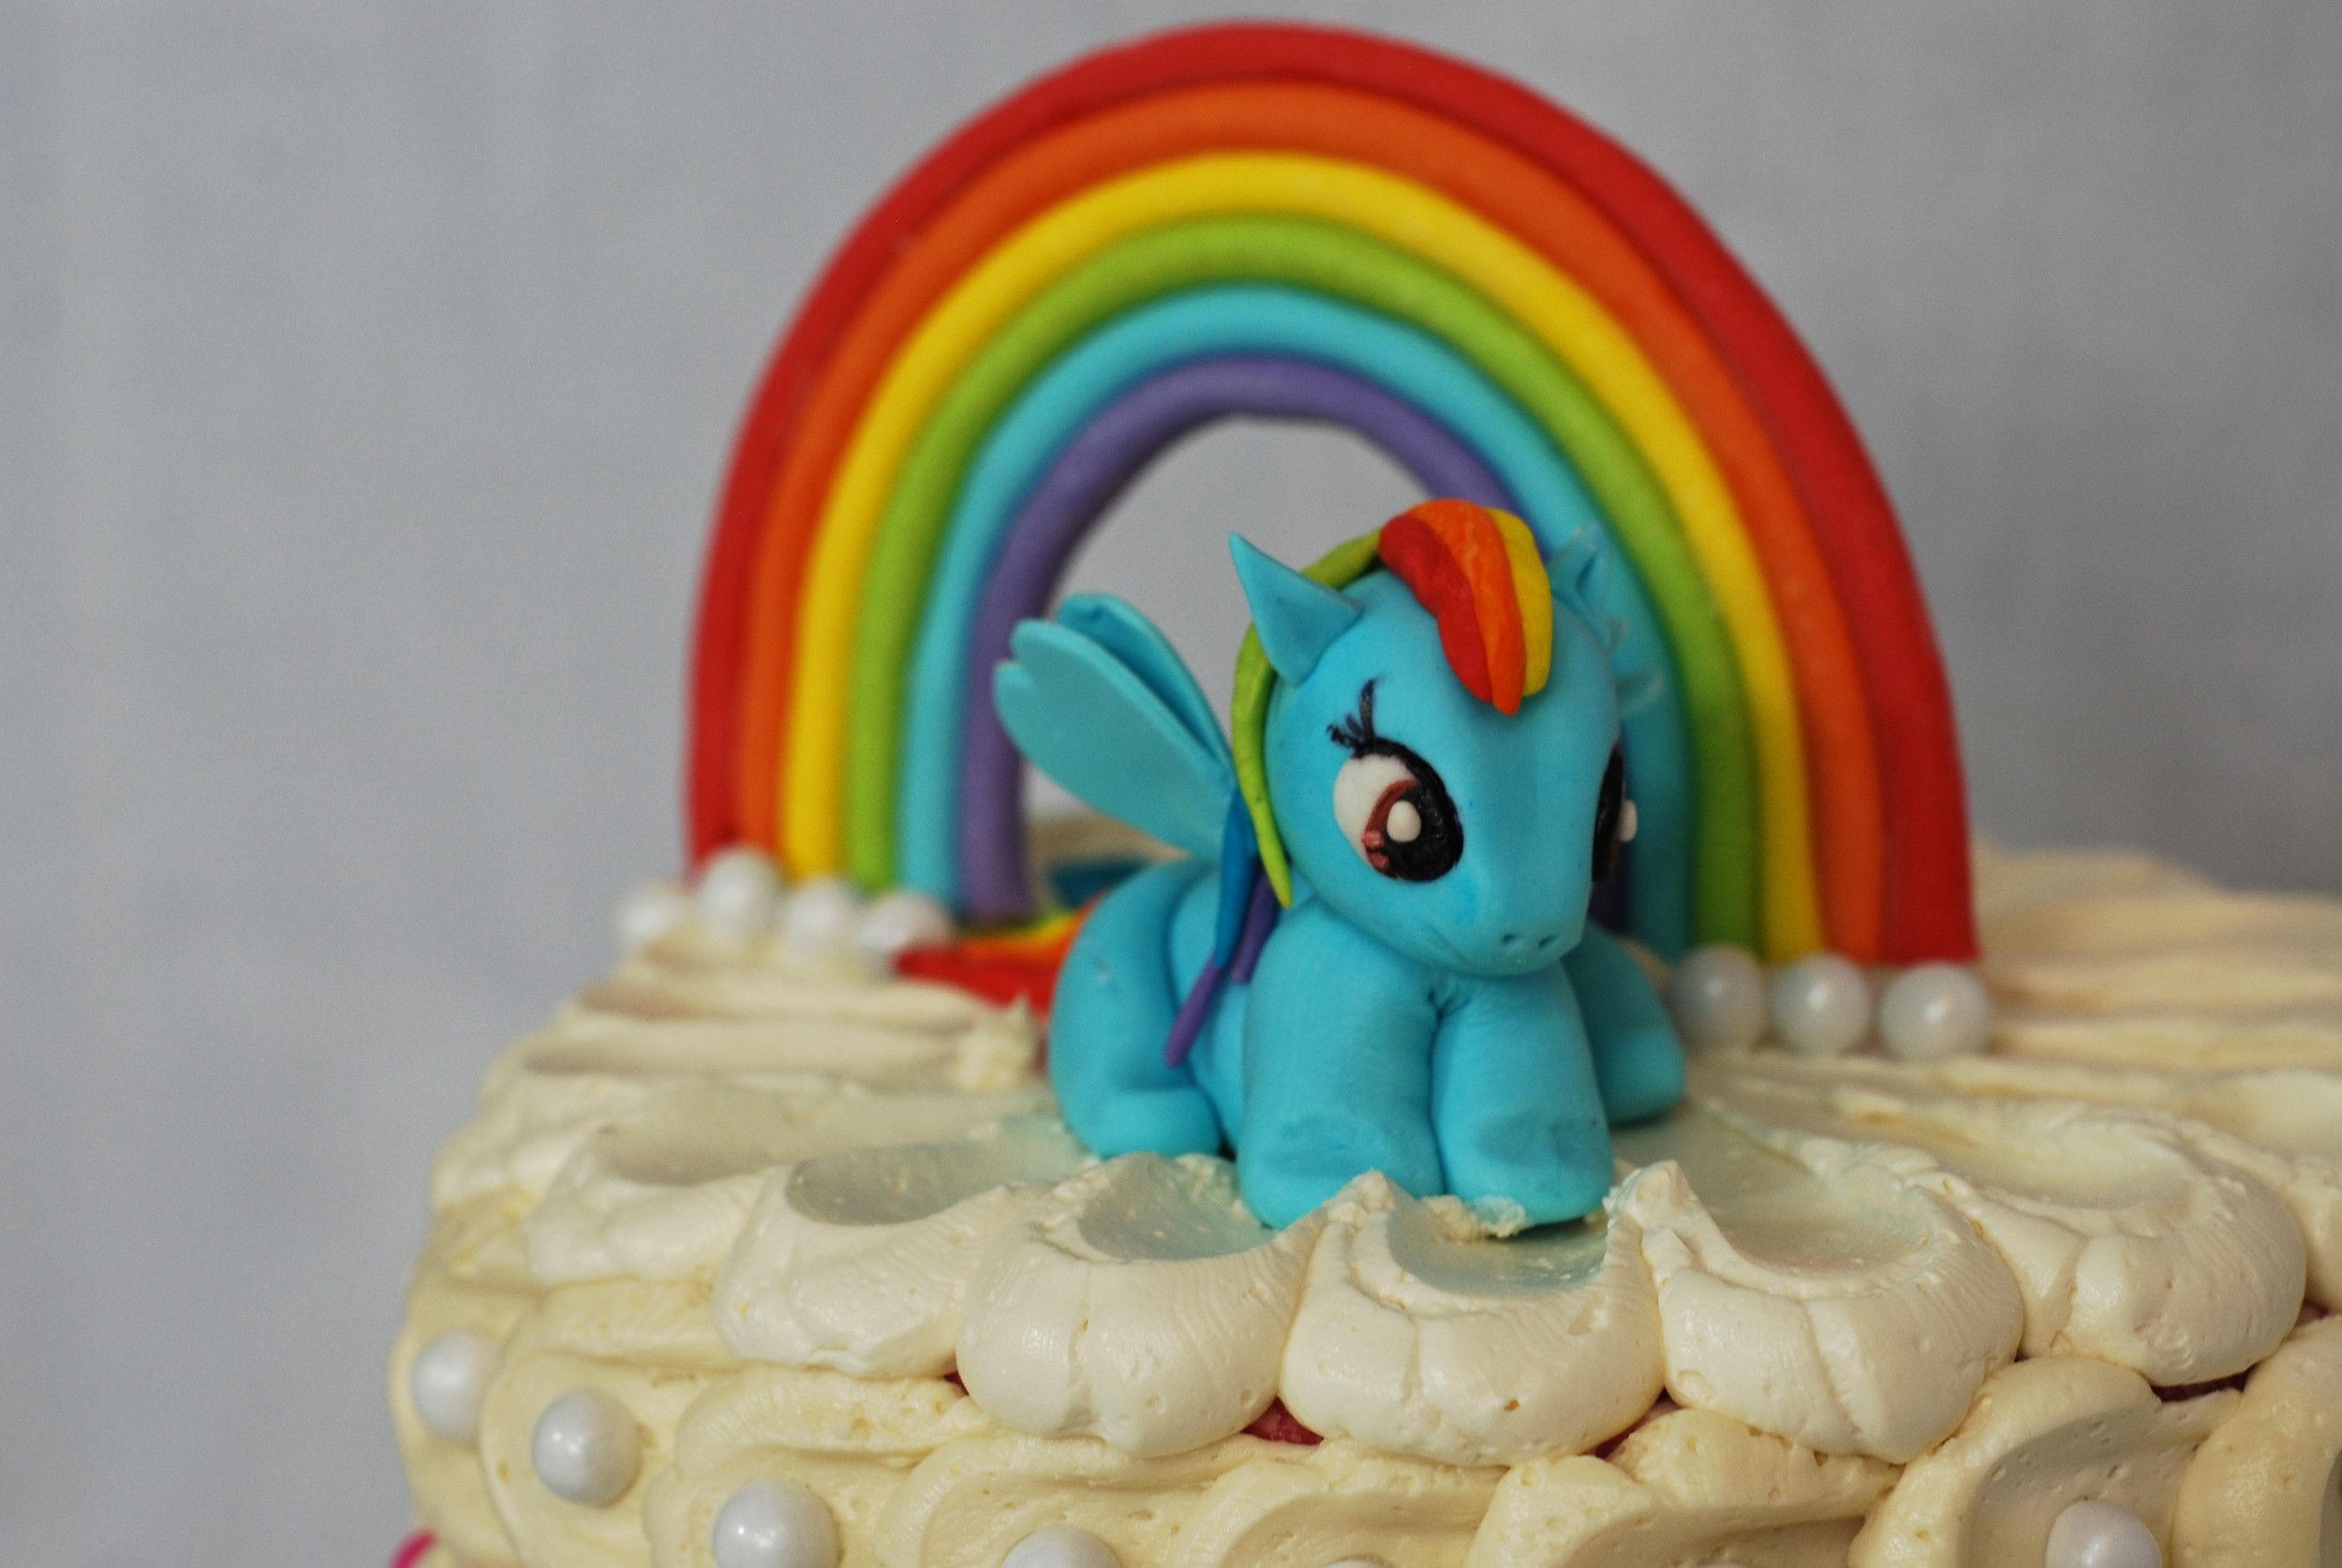 Rainbow Dash sculpted out of our homemade marshmallow fondant.